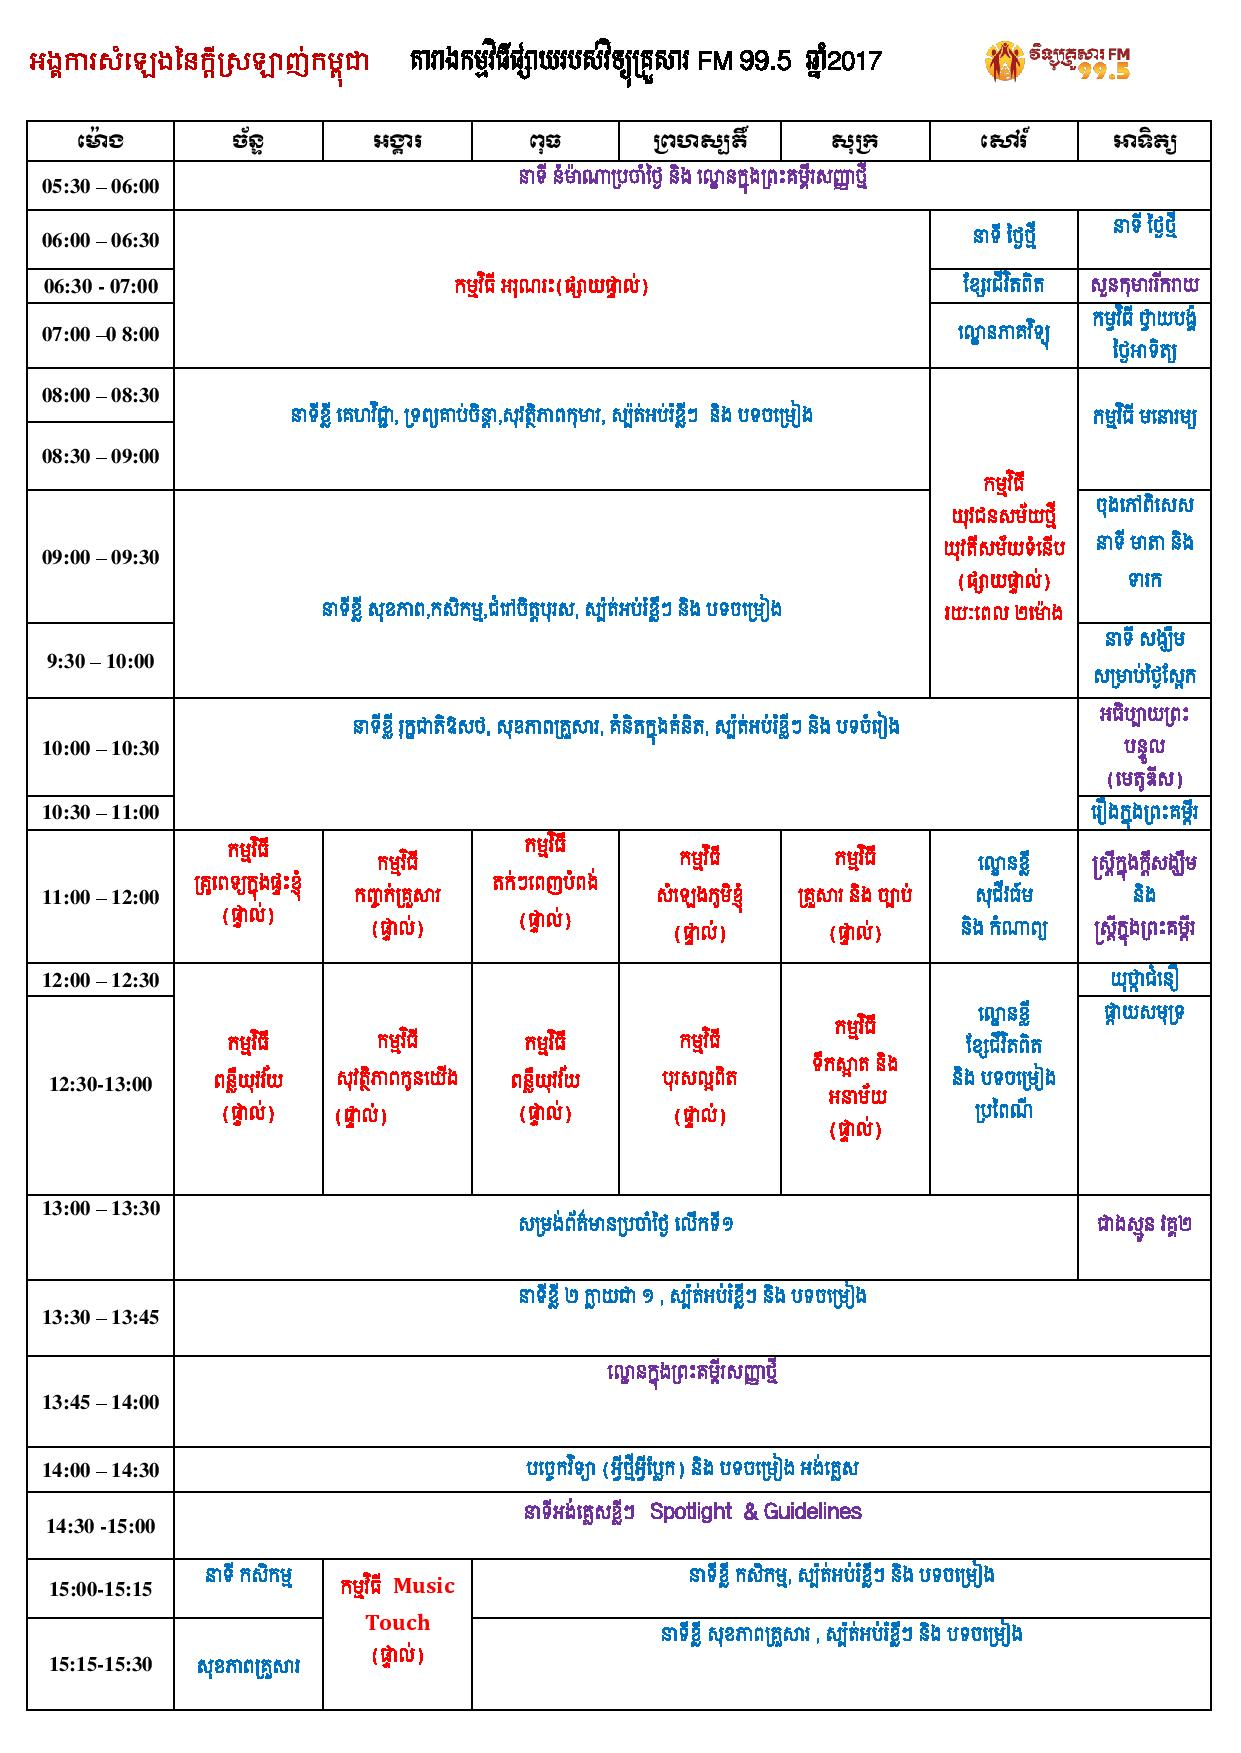 FM Schedule Khmer January 2017 Colorful page 001